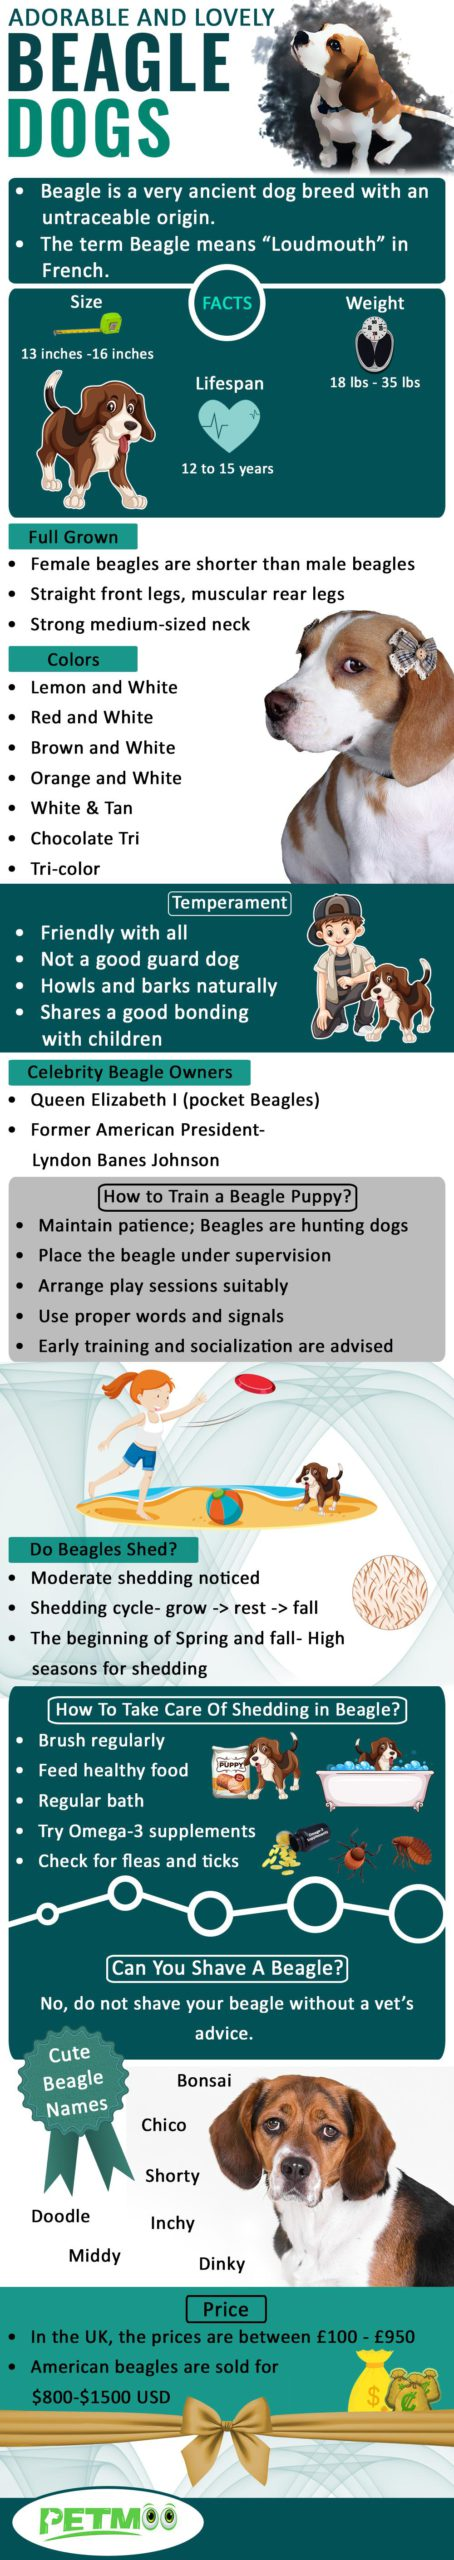 Beagle Dogs Infographic